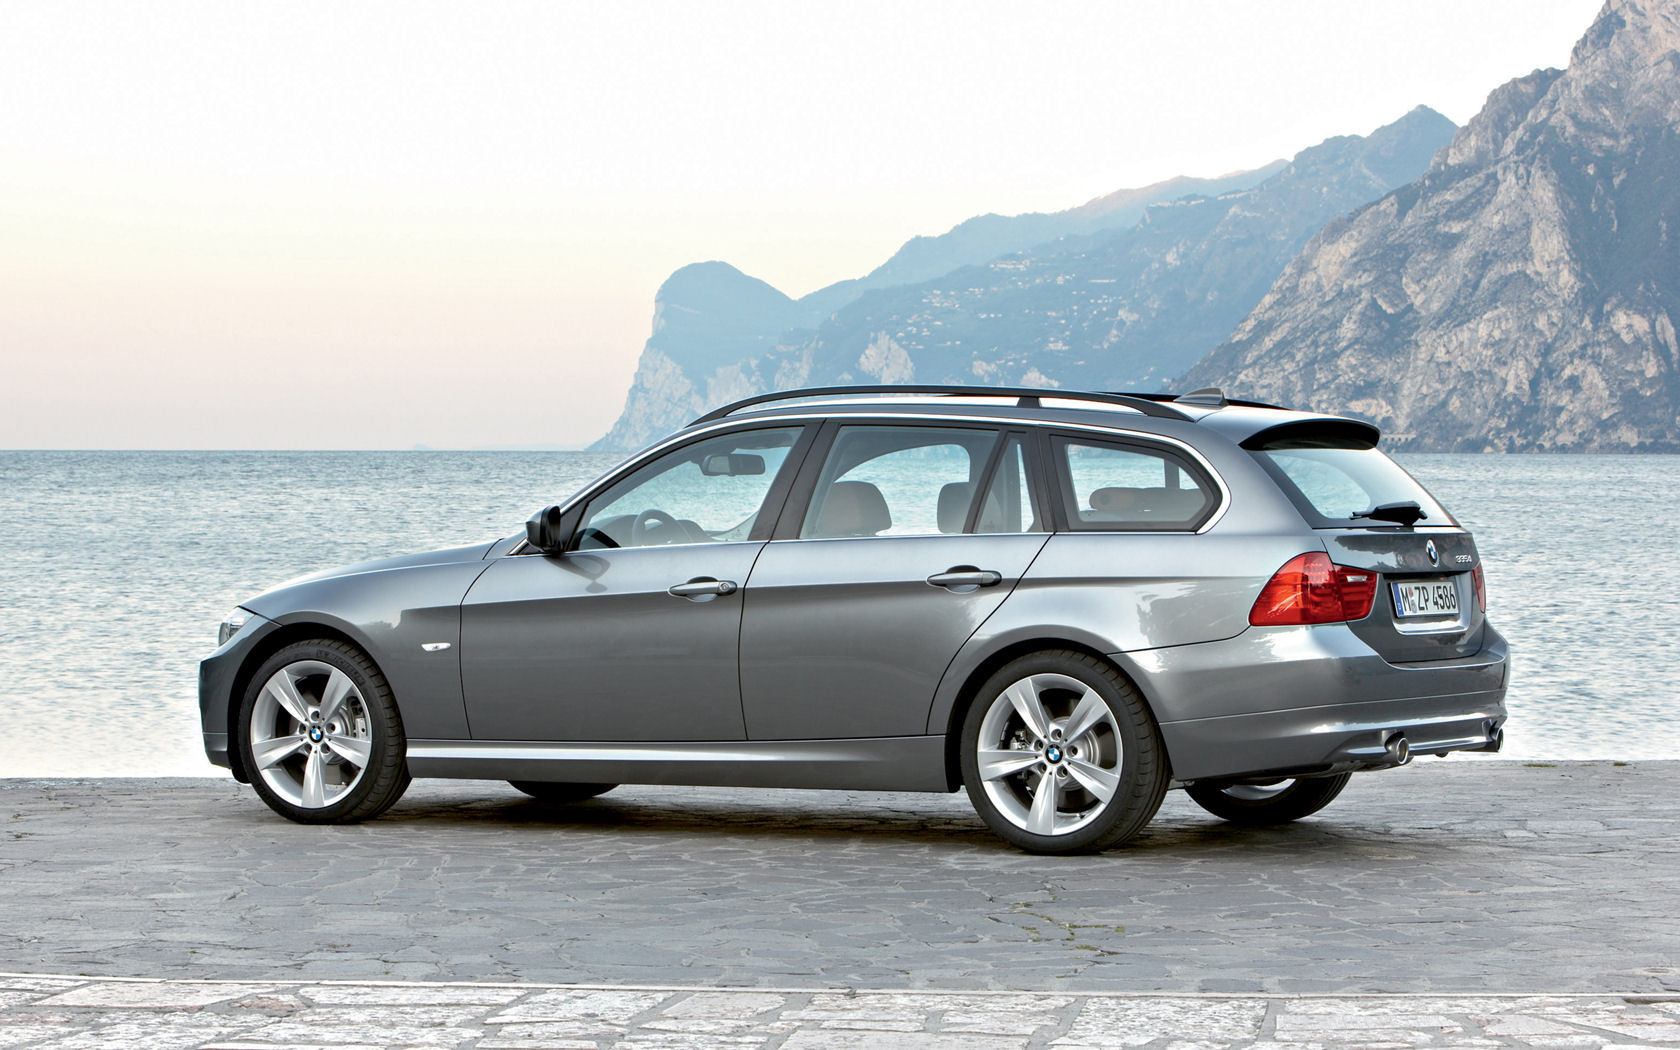 Download Bmw E60 M5 Wallpaper 3 Auto Hd With Resolution 1920x1080 1680x1050